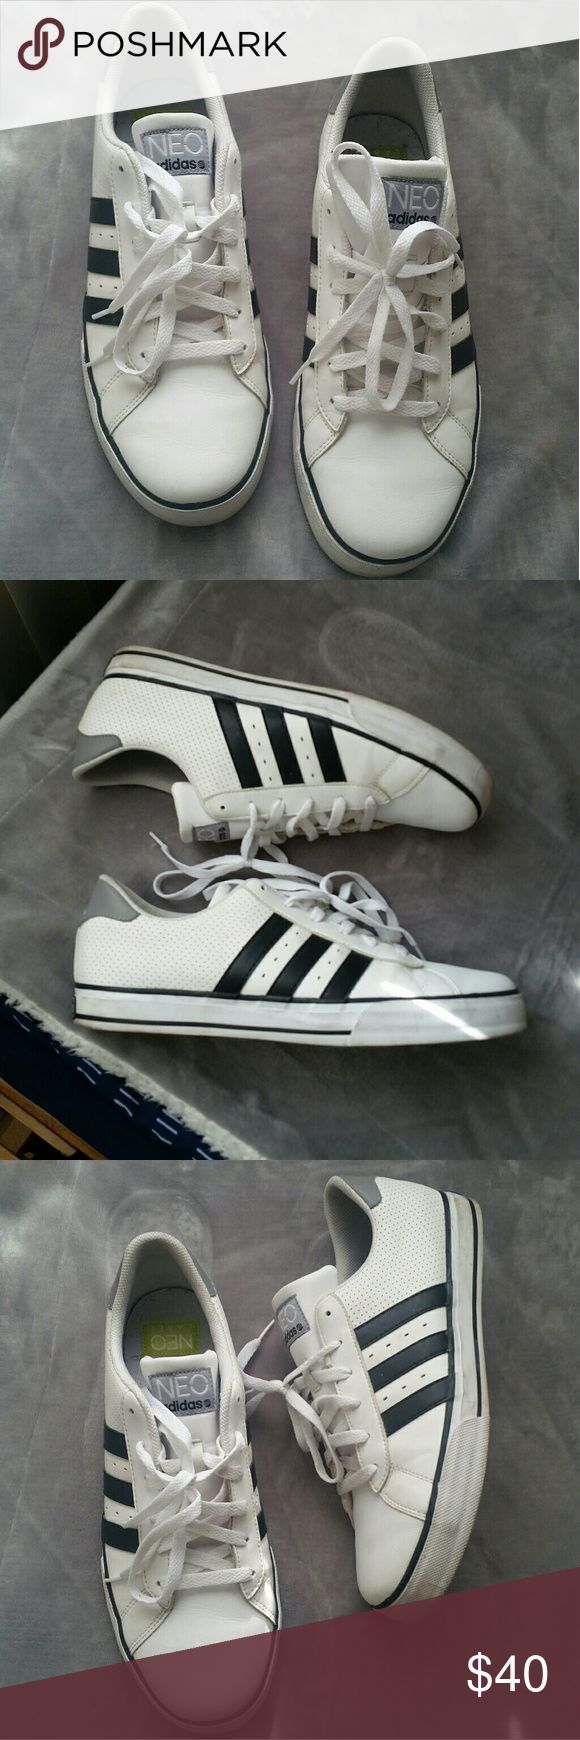 REDUCED PRICE!! Adidas NEO Label Sneakers Size 10 1/2  In Great Condition!  Worn Twice .  Like new , Look Way Better in Person .  Price is FIRM Adidas Shoes